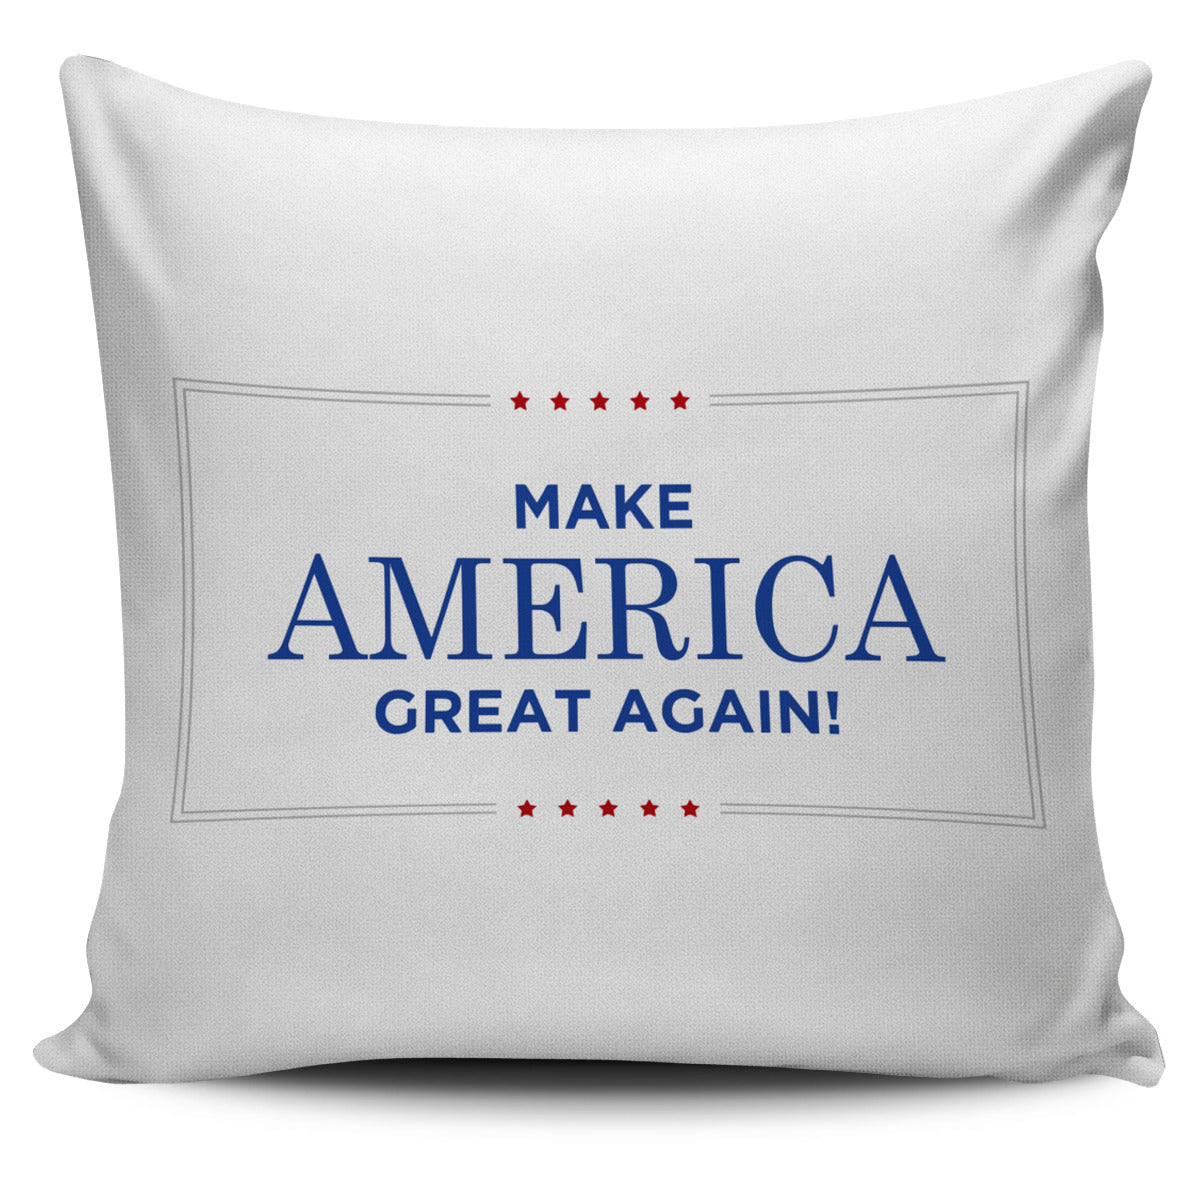 FREE MAGA Pillow Case